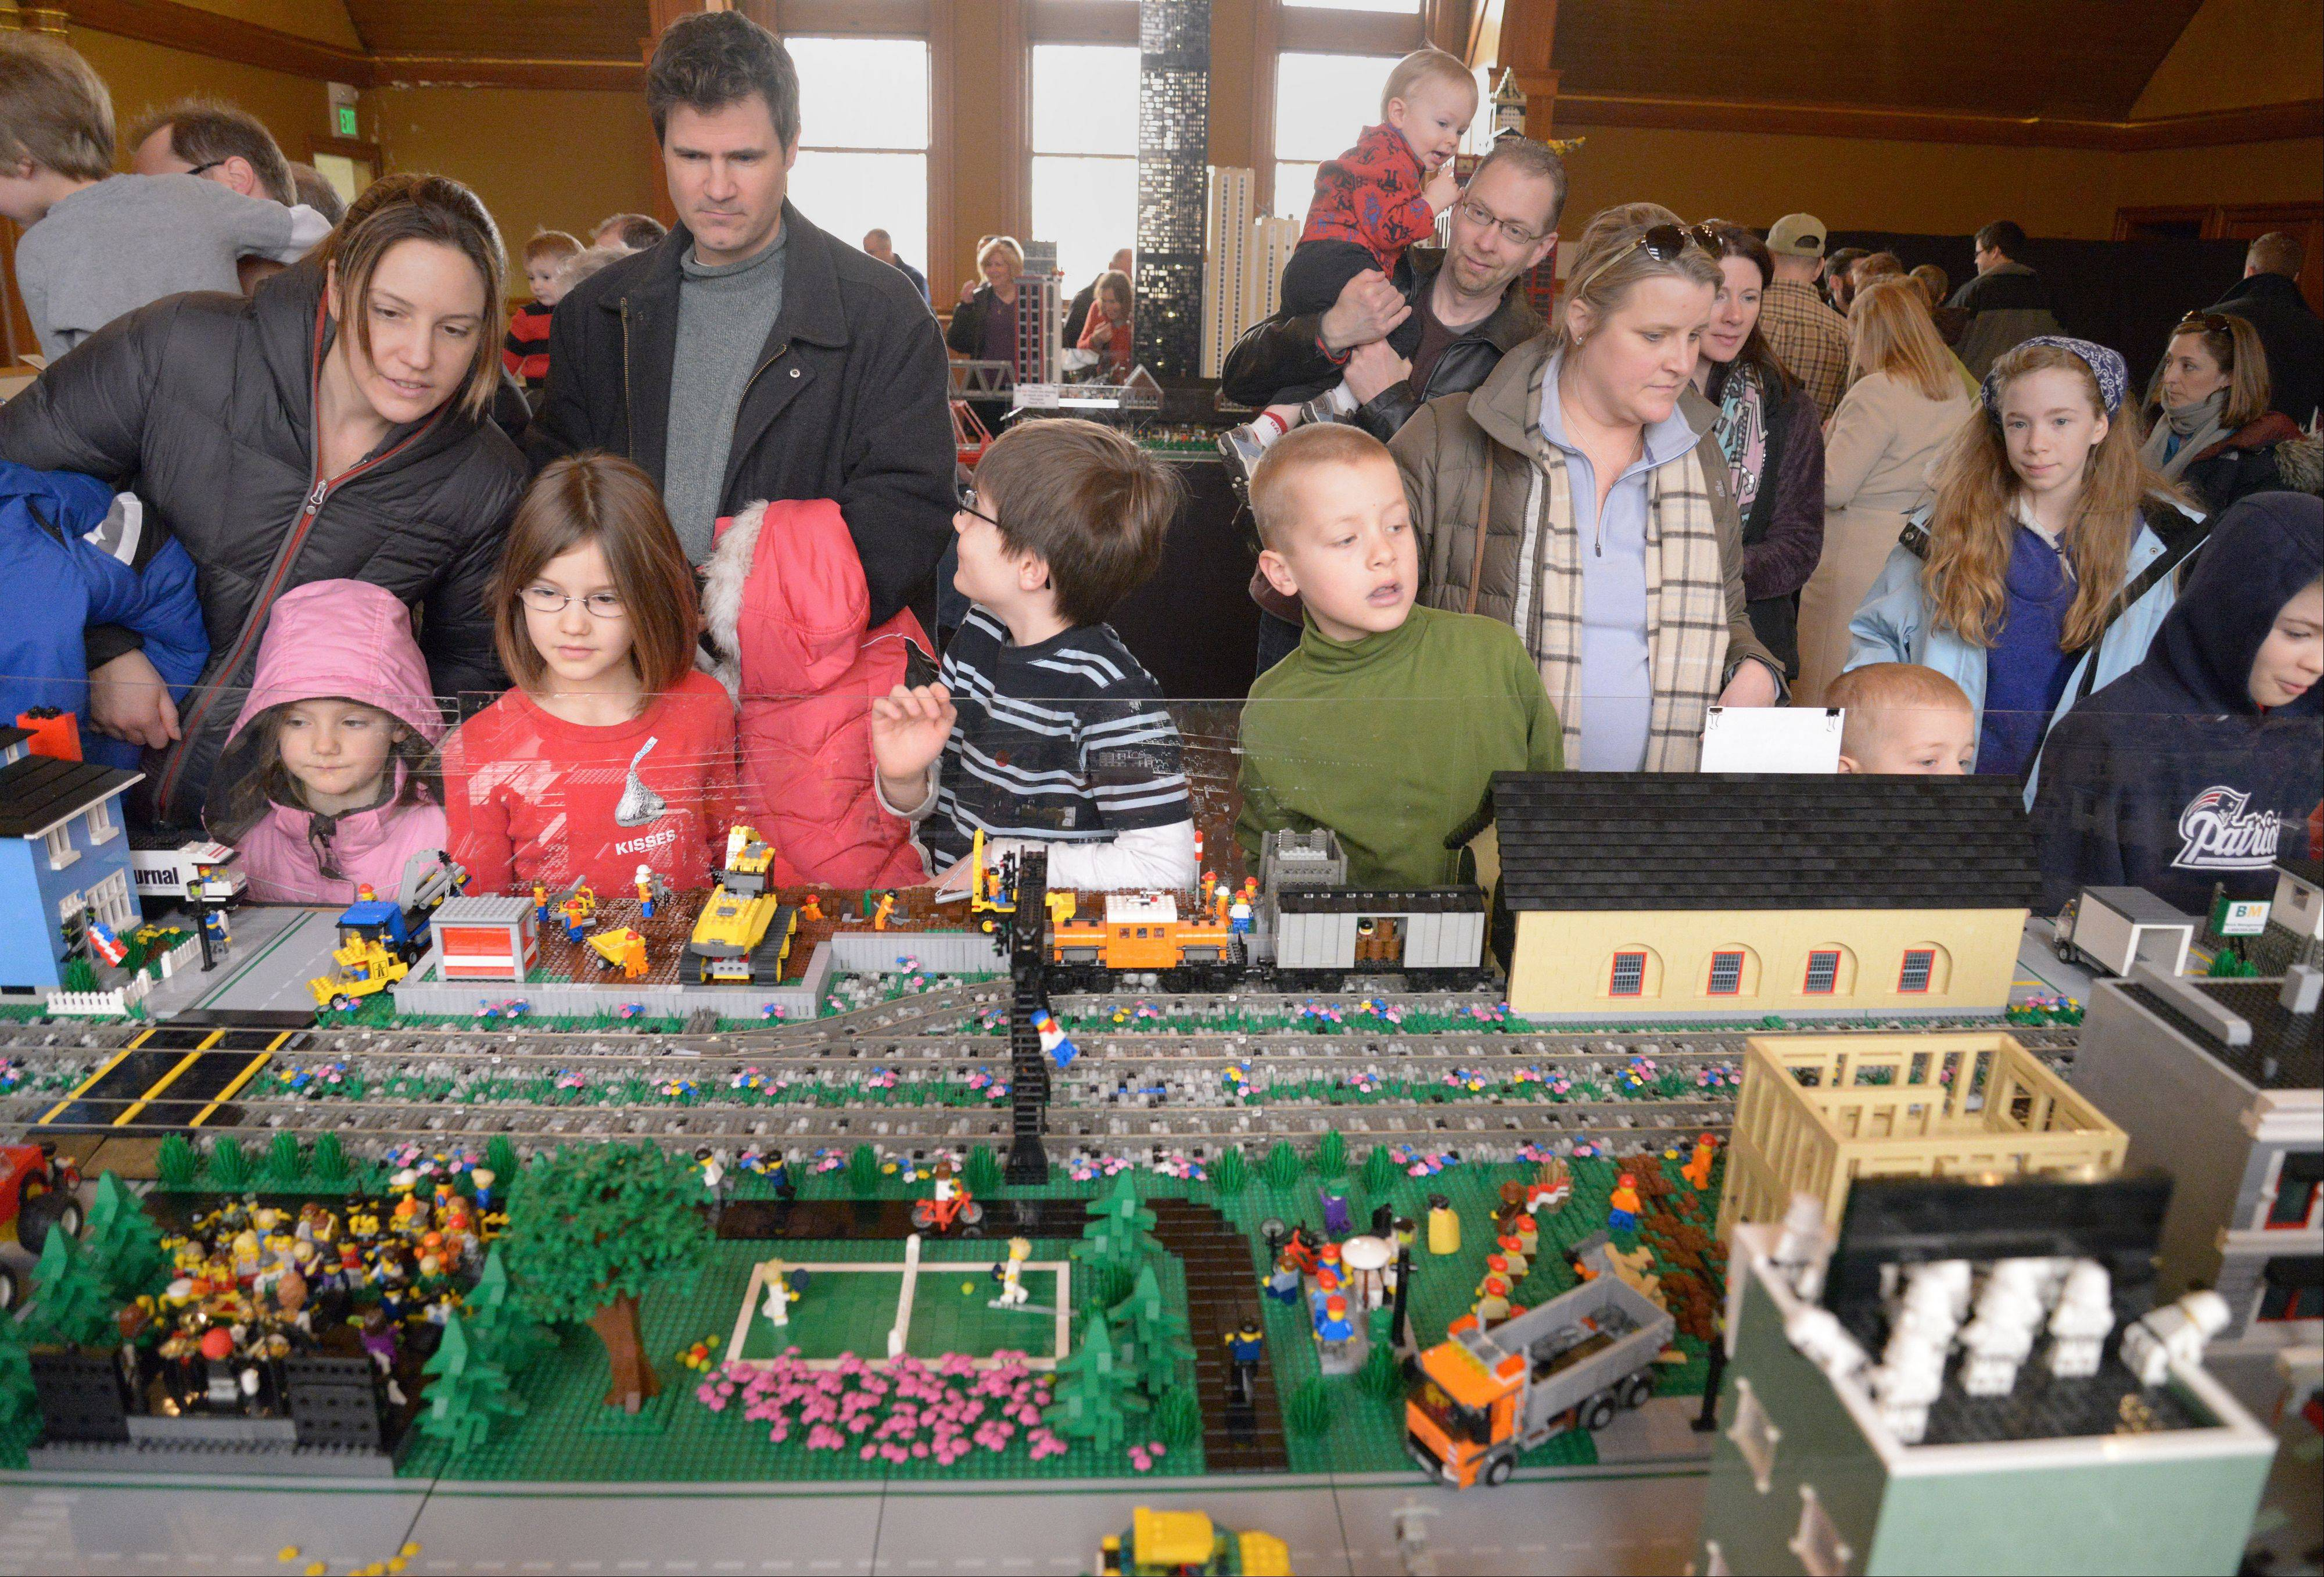 Parents and kids alike enjoyed the Northern Illinois Lego Train Club's show Saturday at the DuPage County Historical Museum in Wheaton. The event continues Sunday.